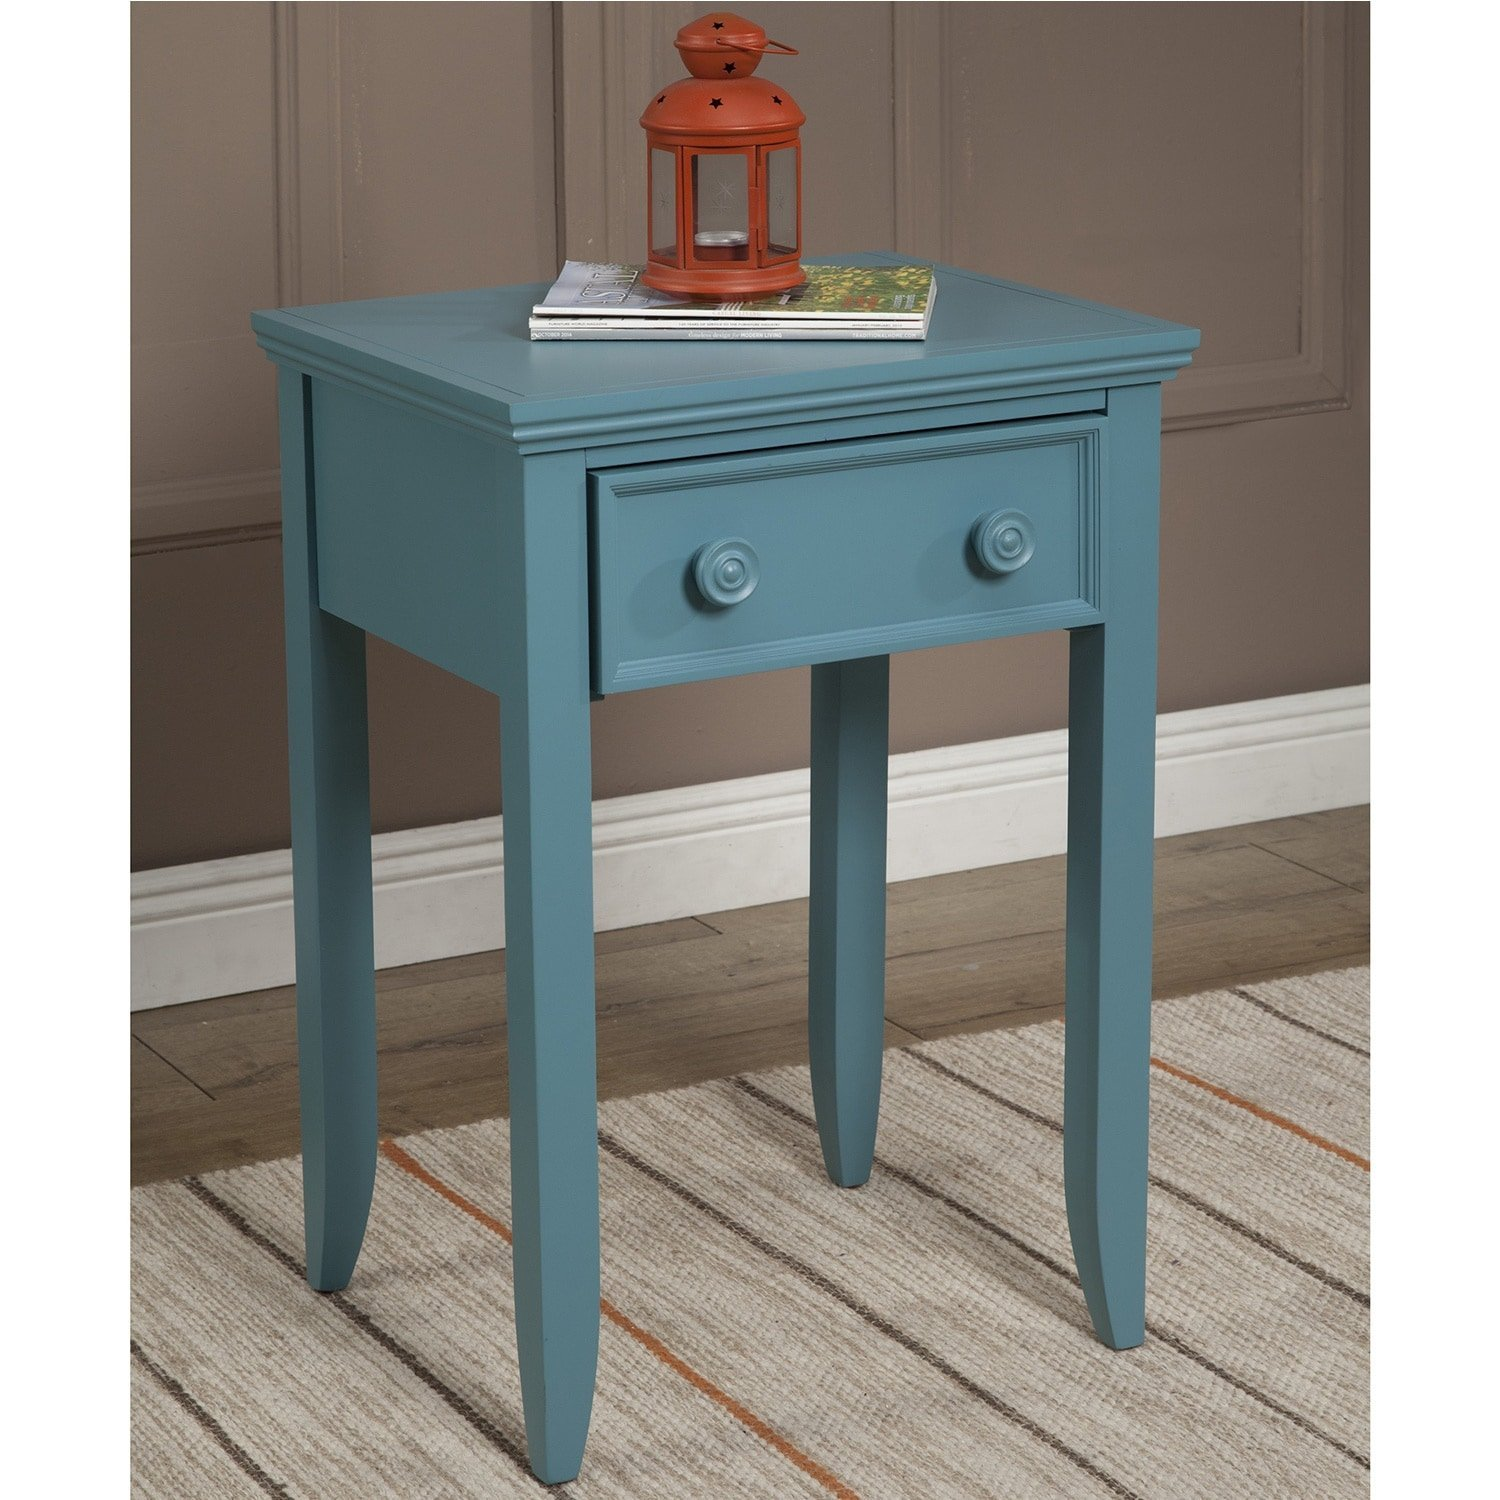 JOHN BOYD DESIGNS Notting Hill Night Stand 4 Legs 1 Drawer Teal, Green Green Finish, Painted